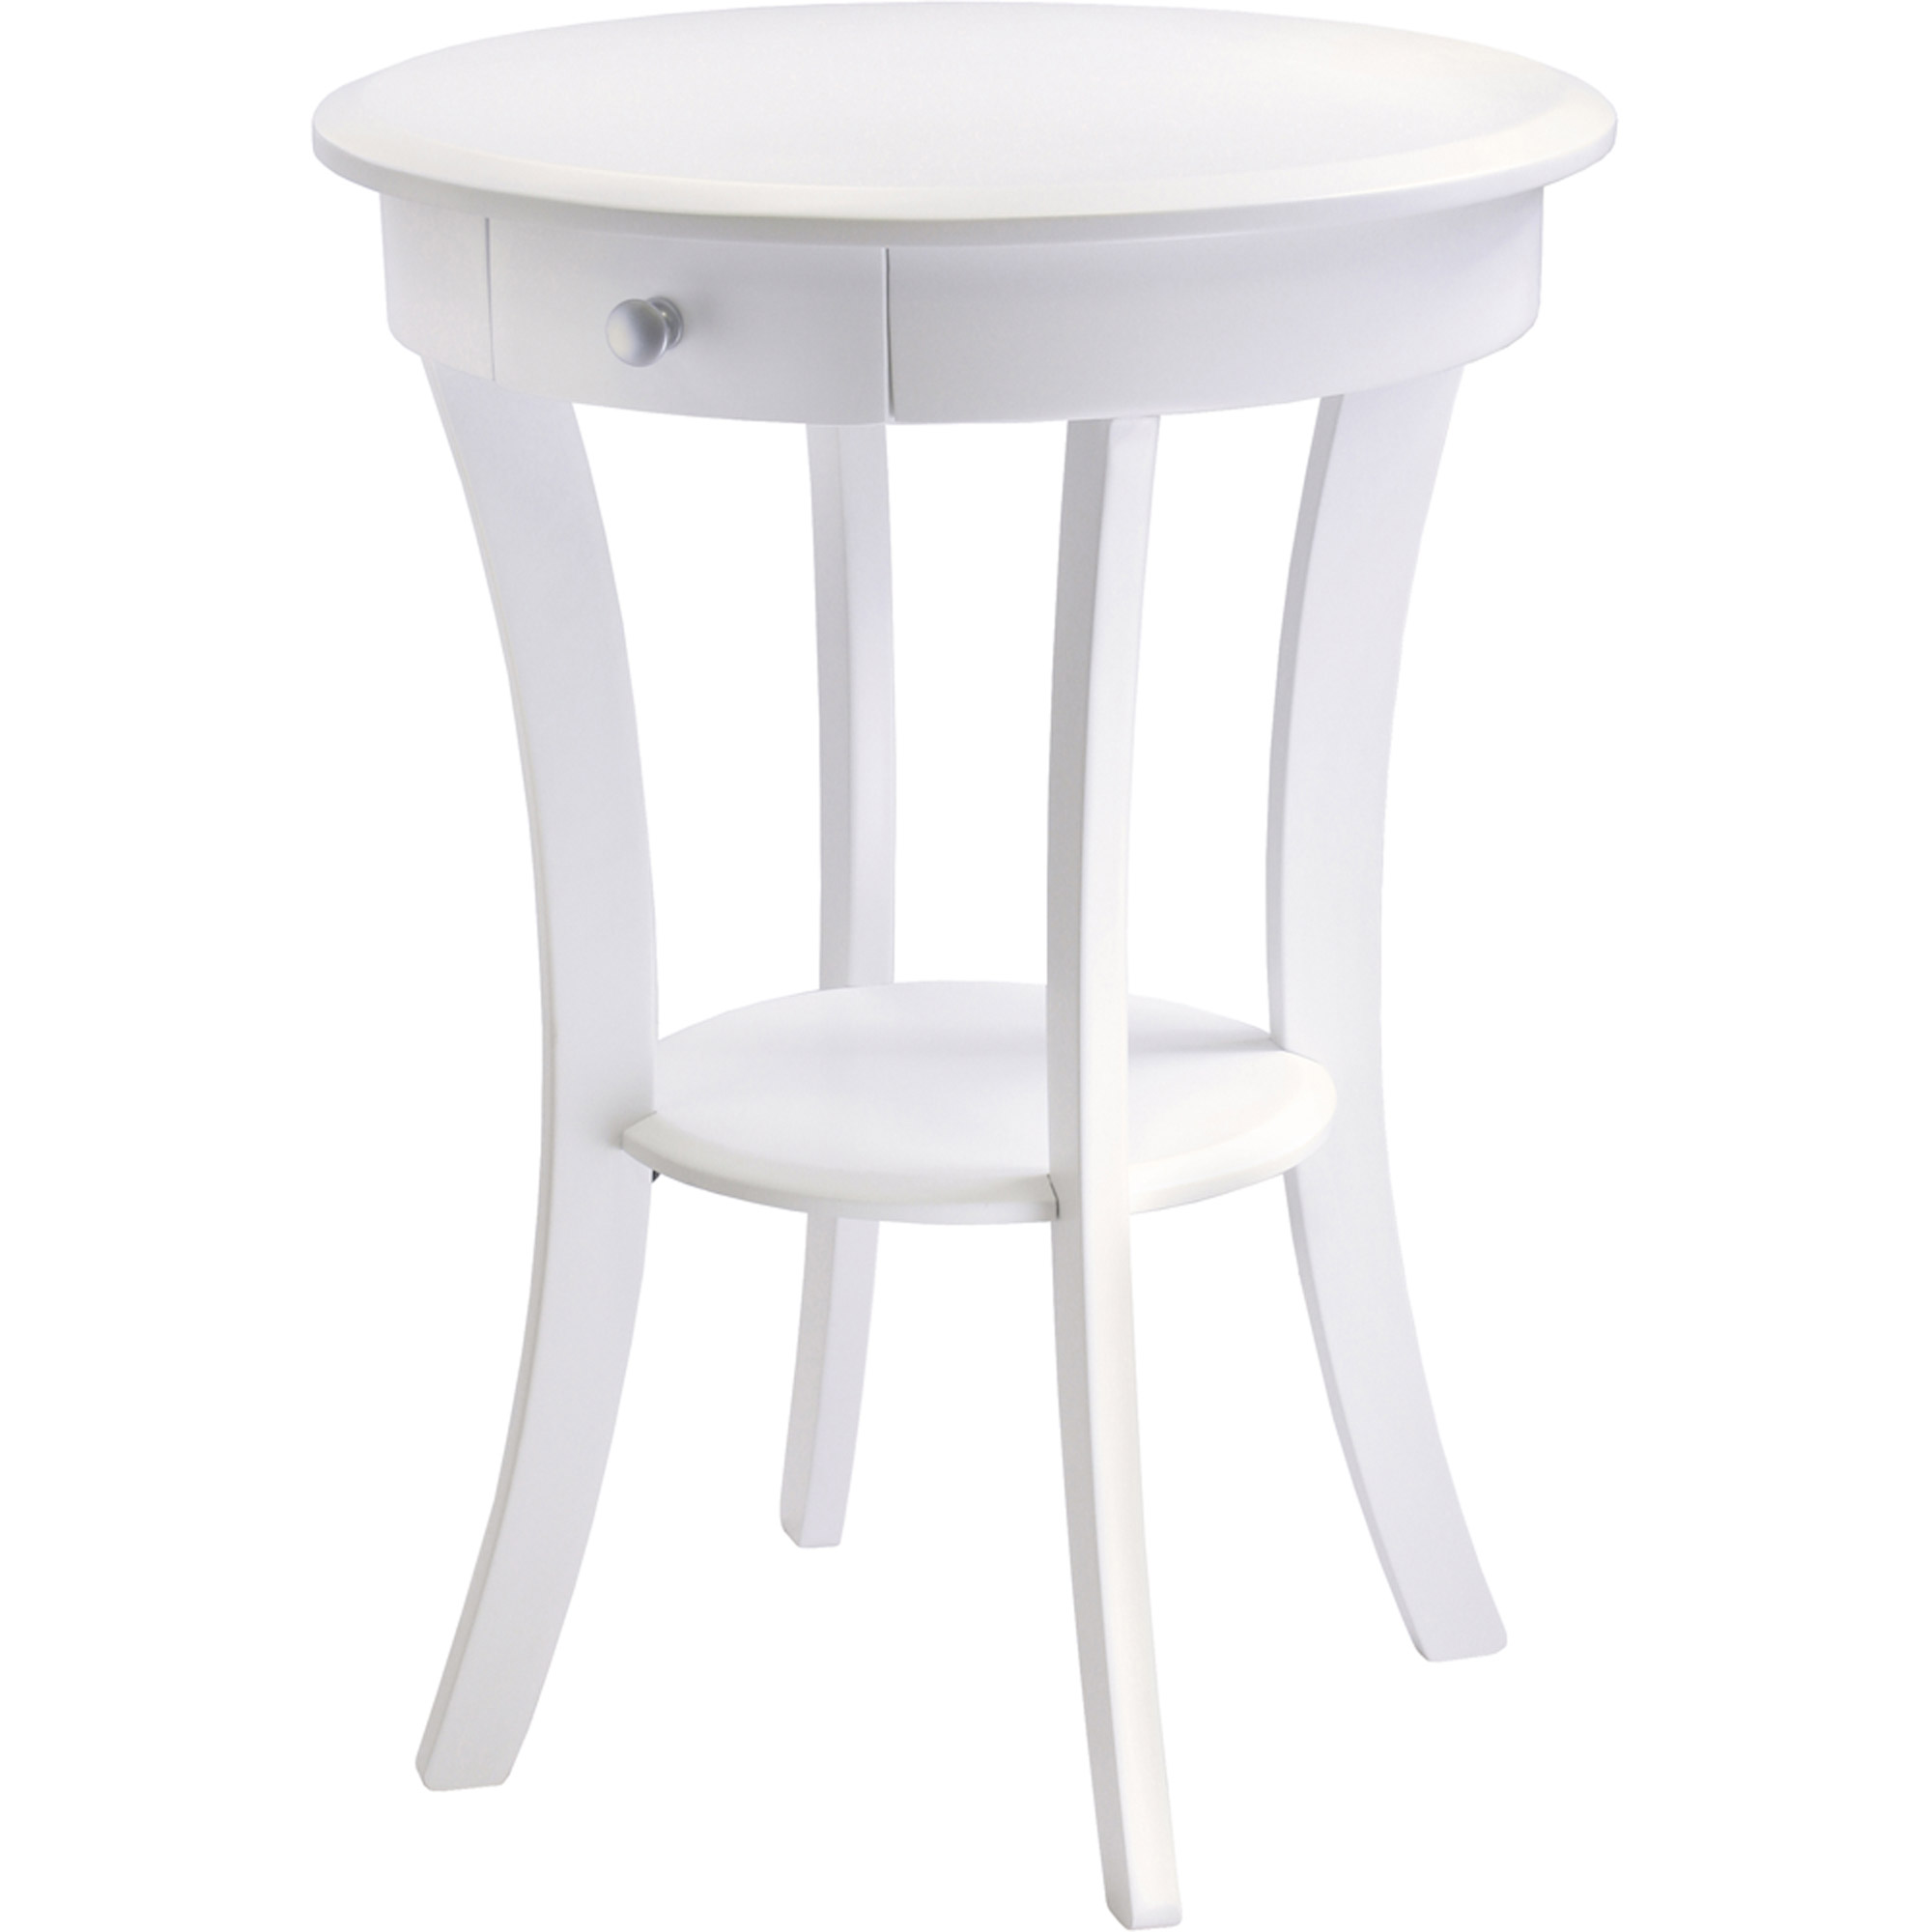 wonderful white gloss round bedside table argos freedom industrial lampshades small target ideas marble decor mirrored modern tables deutsch walnut gold tray cloths kmart